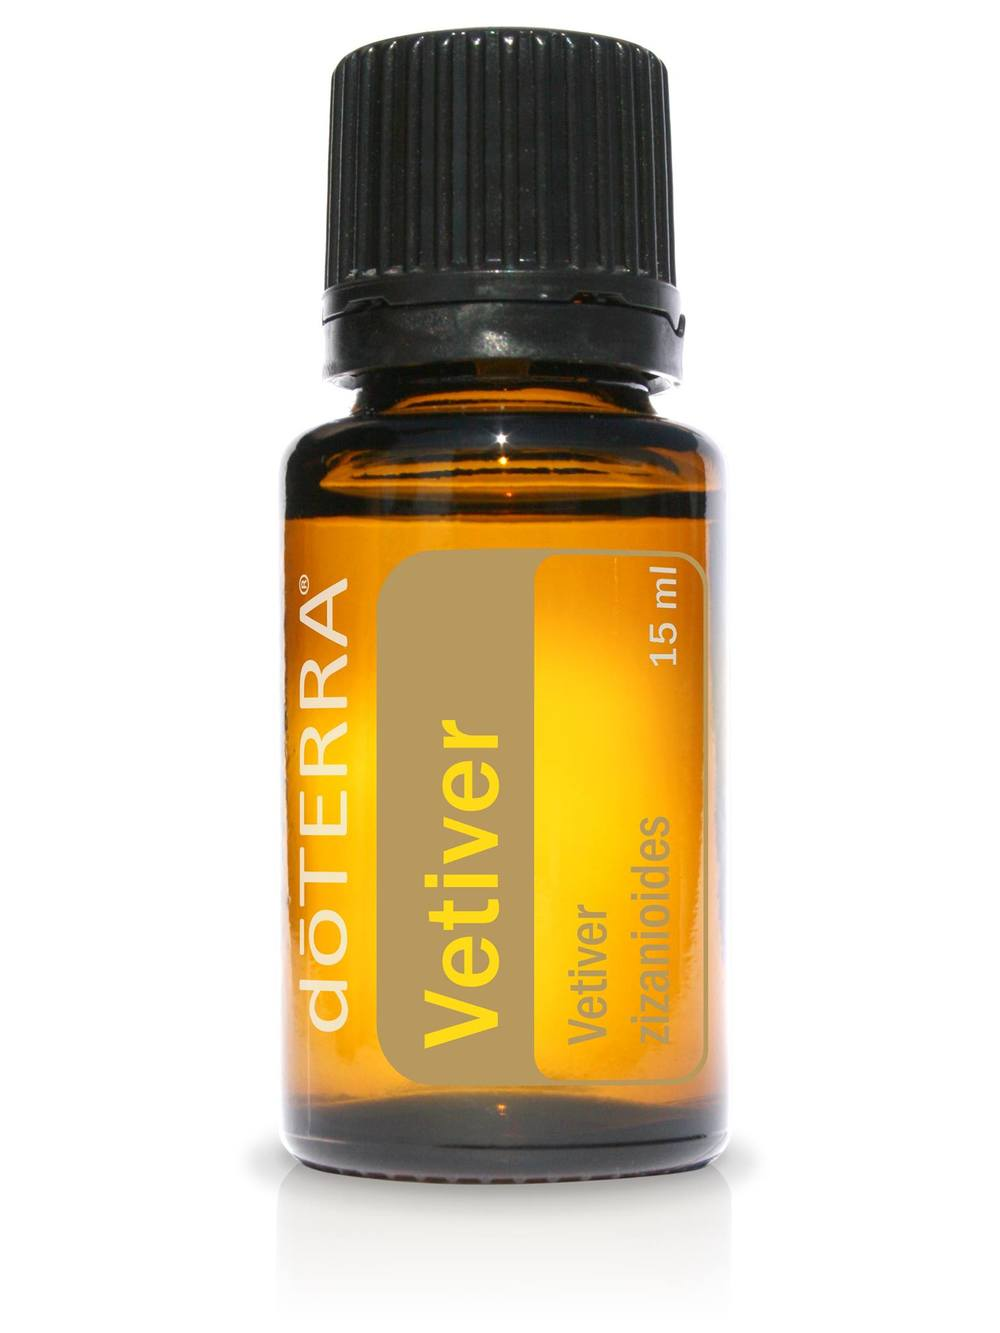 Vetiver by doTerra